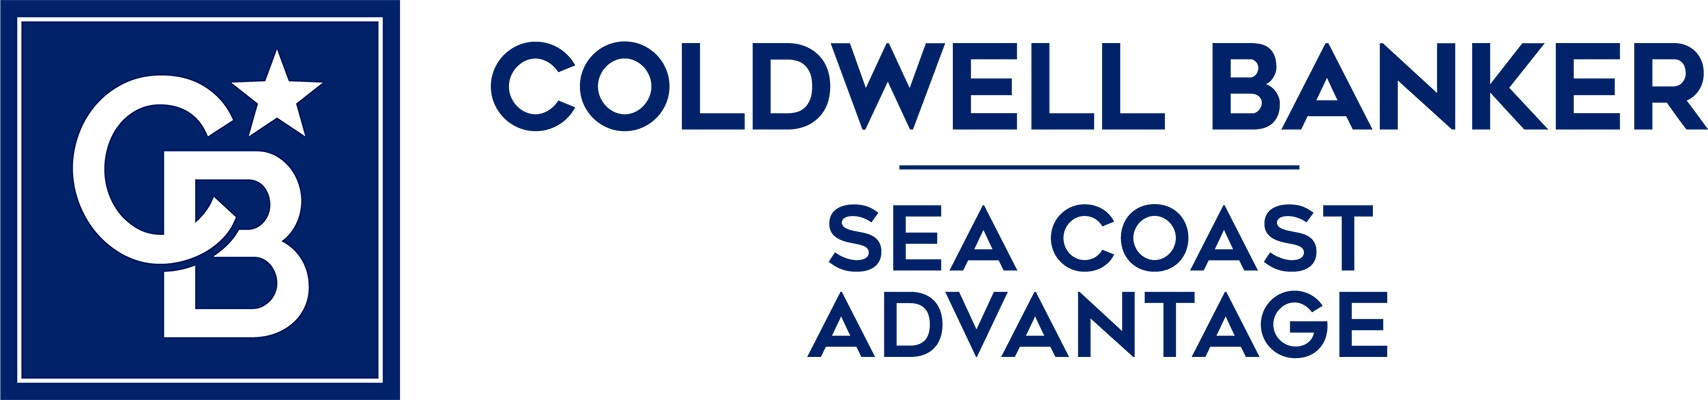 Georganna Smith - Coldwell Banker Sea Coast Advantage Realty